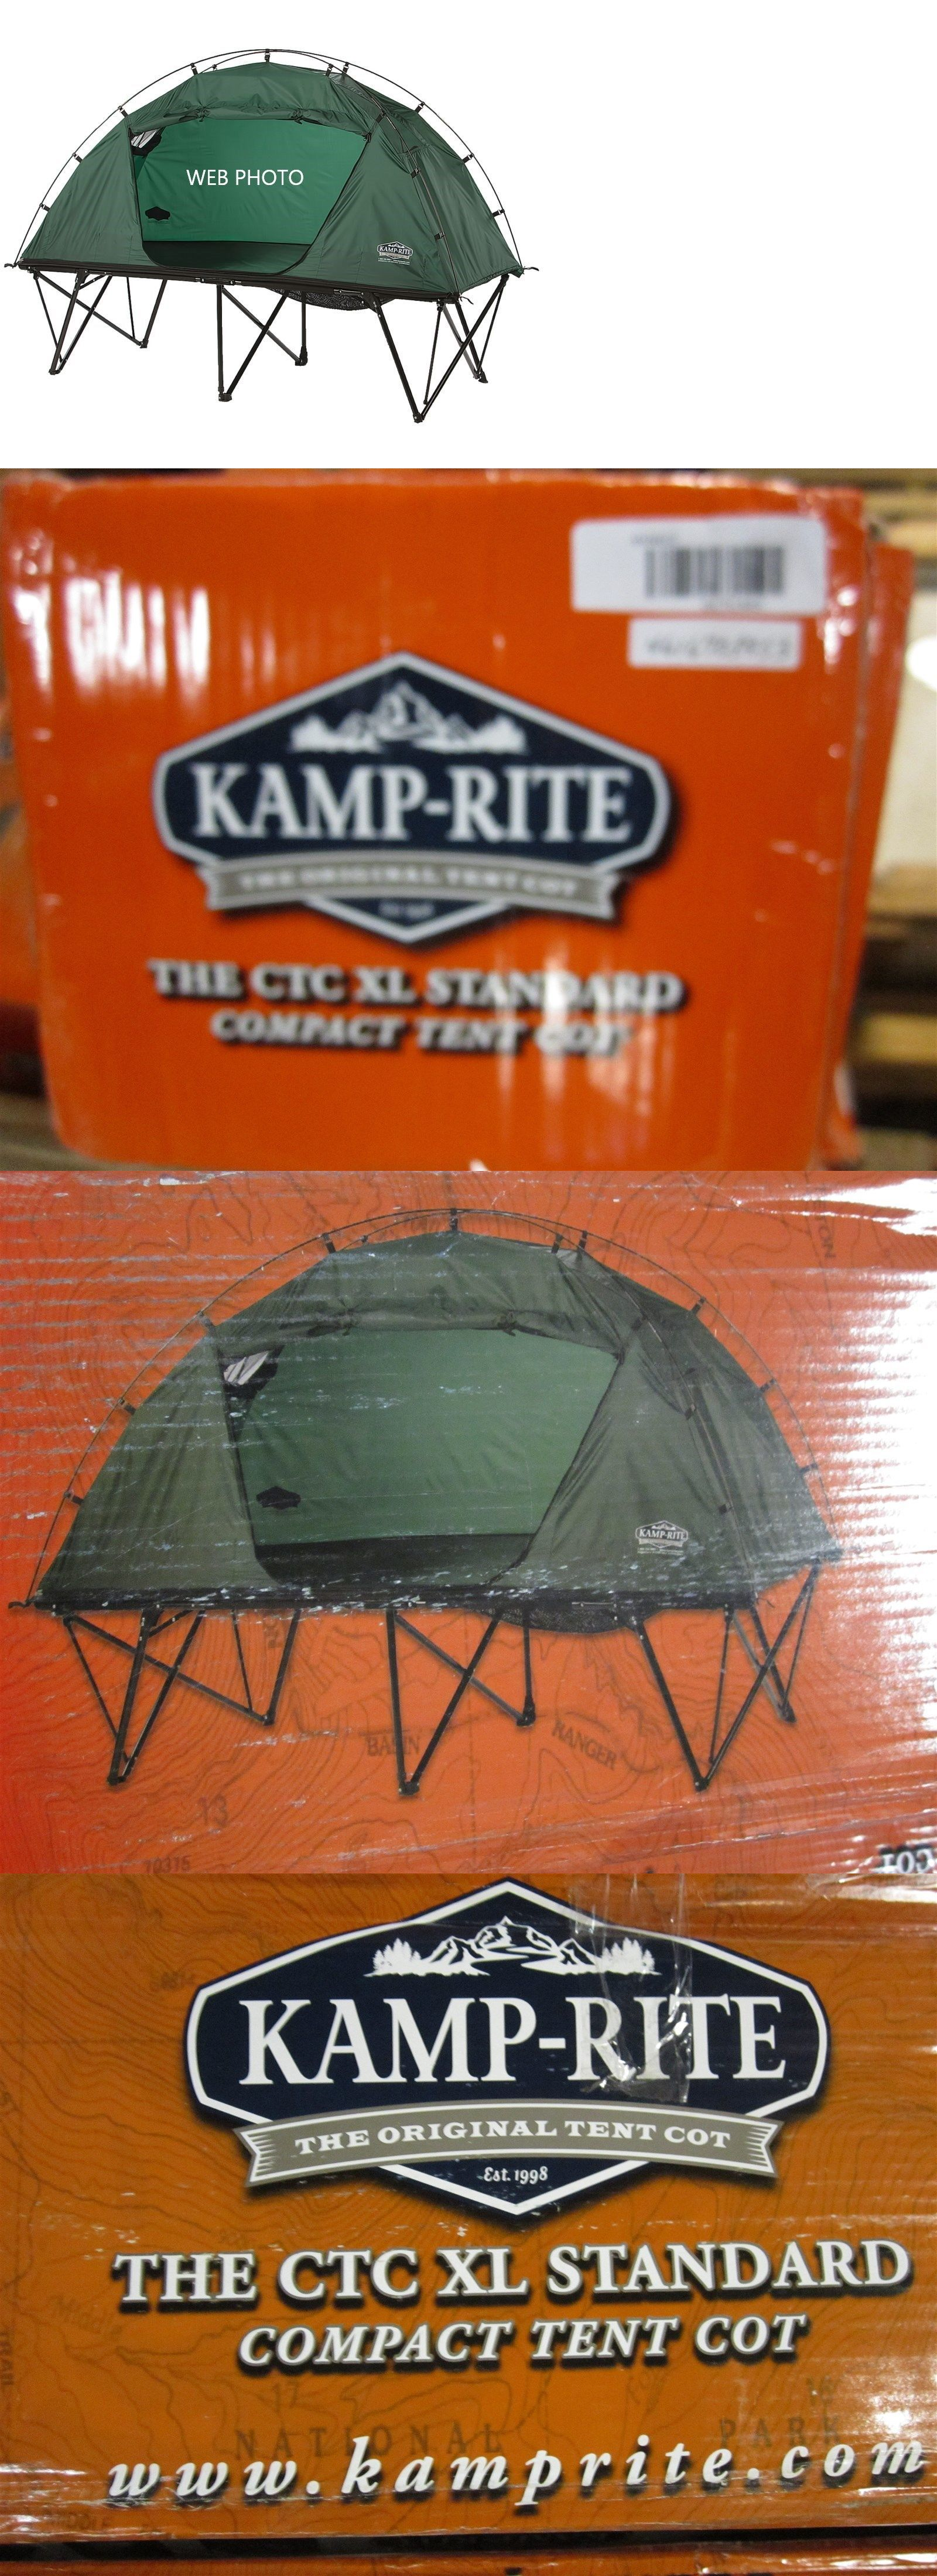 Other C&ing Sleeping Gear 16040 K&-Rite Tent Cot Inc Octc443 Green Extra Large : kamp rite tent cot inc - memphite.com